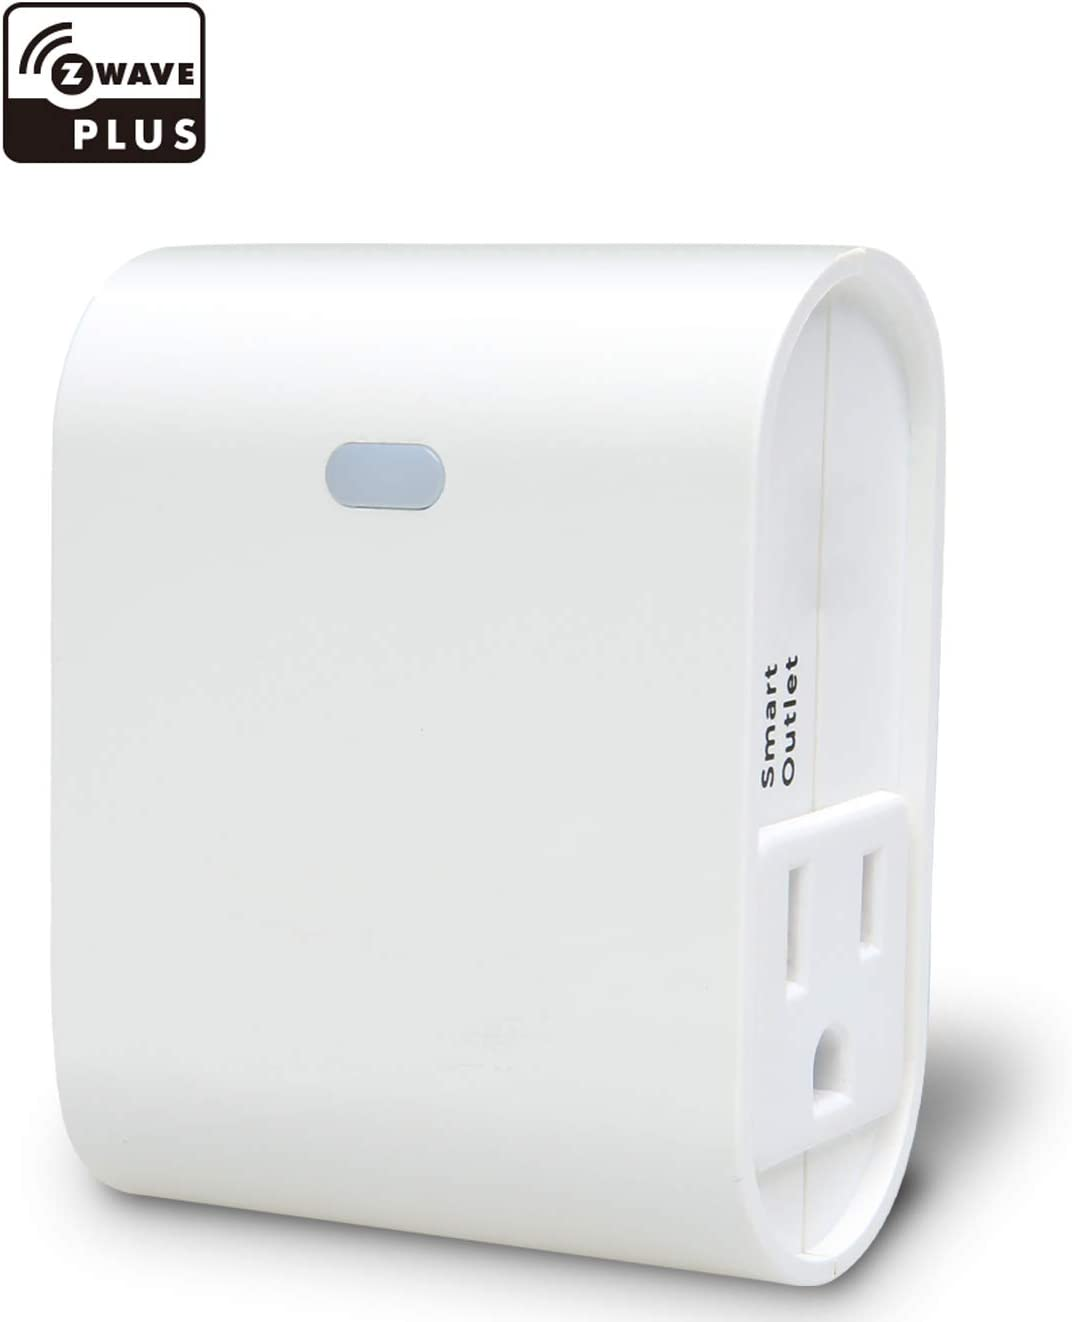 Z-Wave Smart On/Off Light and Appliance Plug, Dual Outlet Plug-in, 1 Alway-On+ 1 Smart, Built-in Zwave Repeater, Zwave Hub Required, Works with SmartThings, Wink